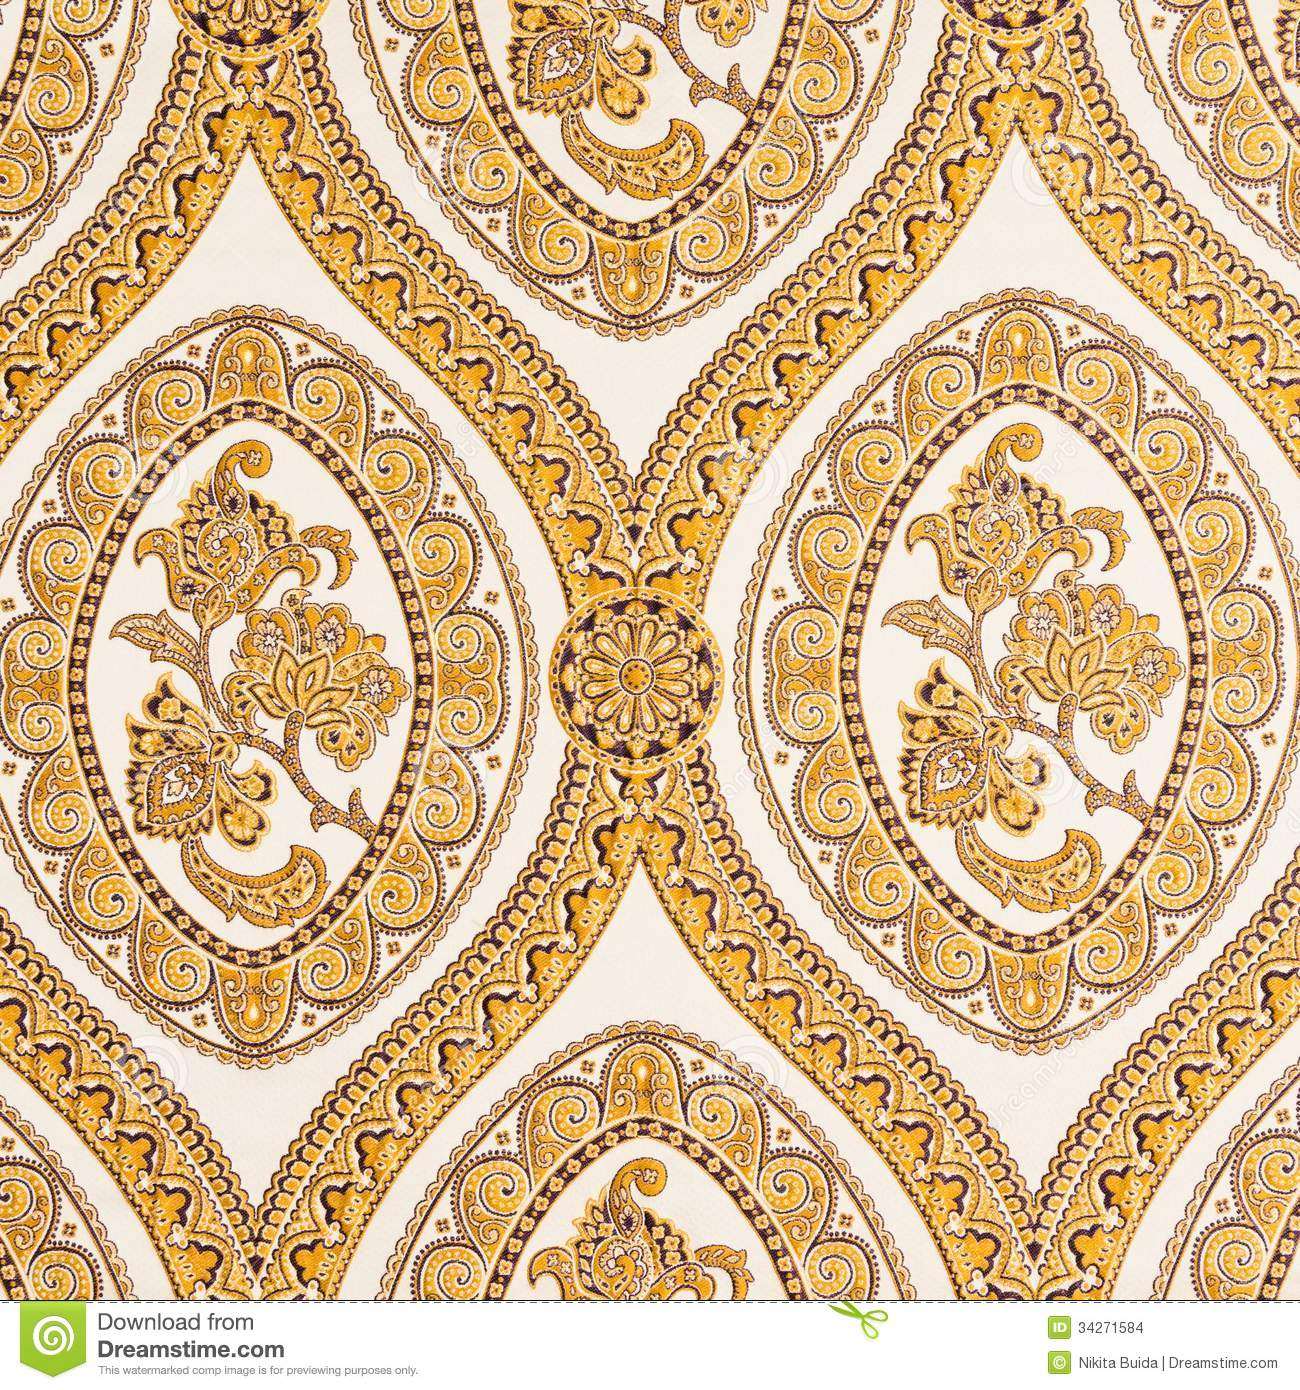 Raw textile fabric material texture background stock for Fabrics and materials